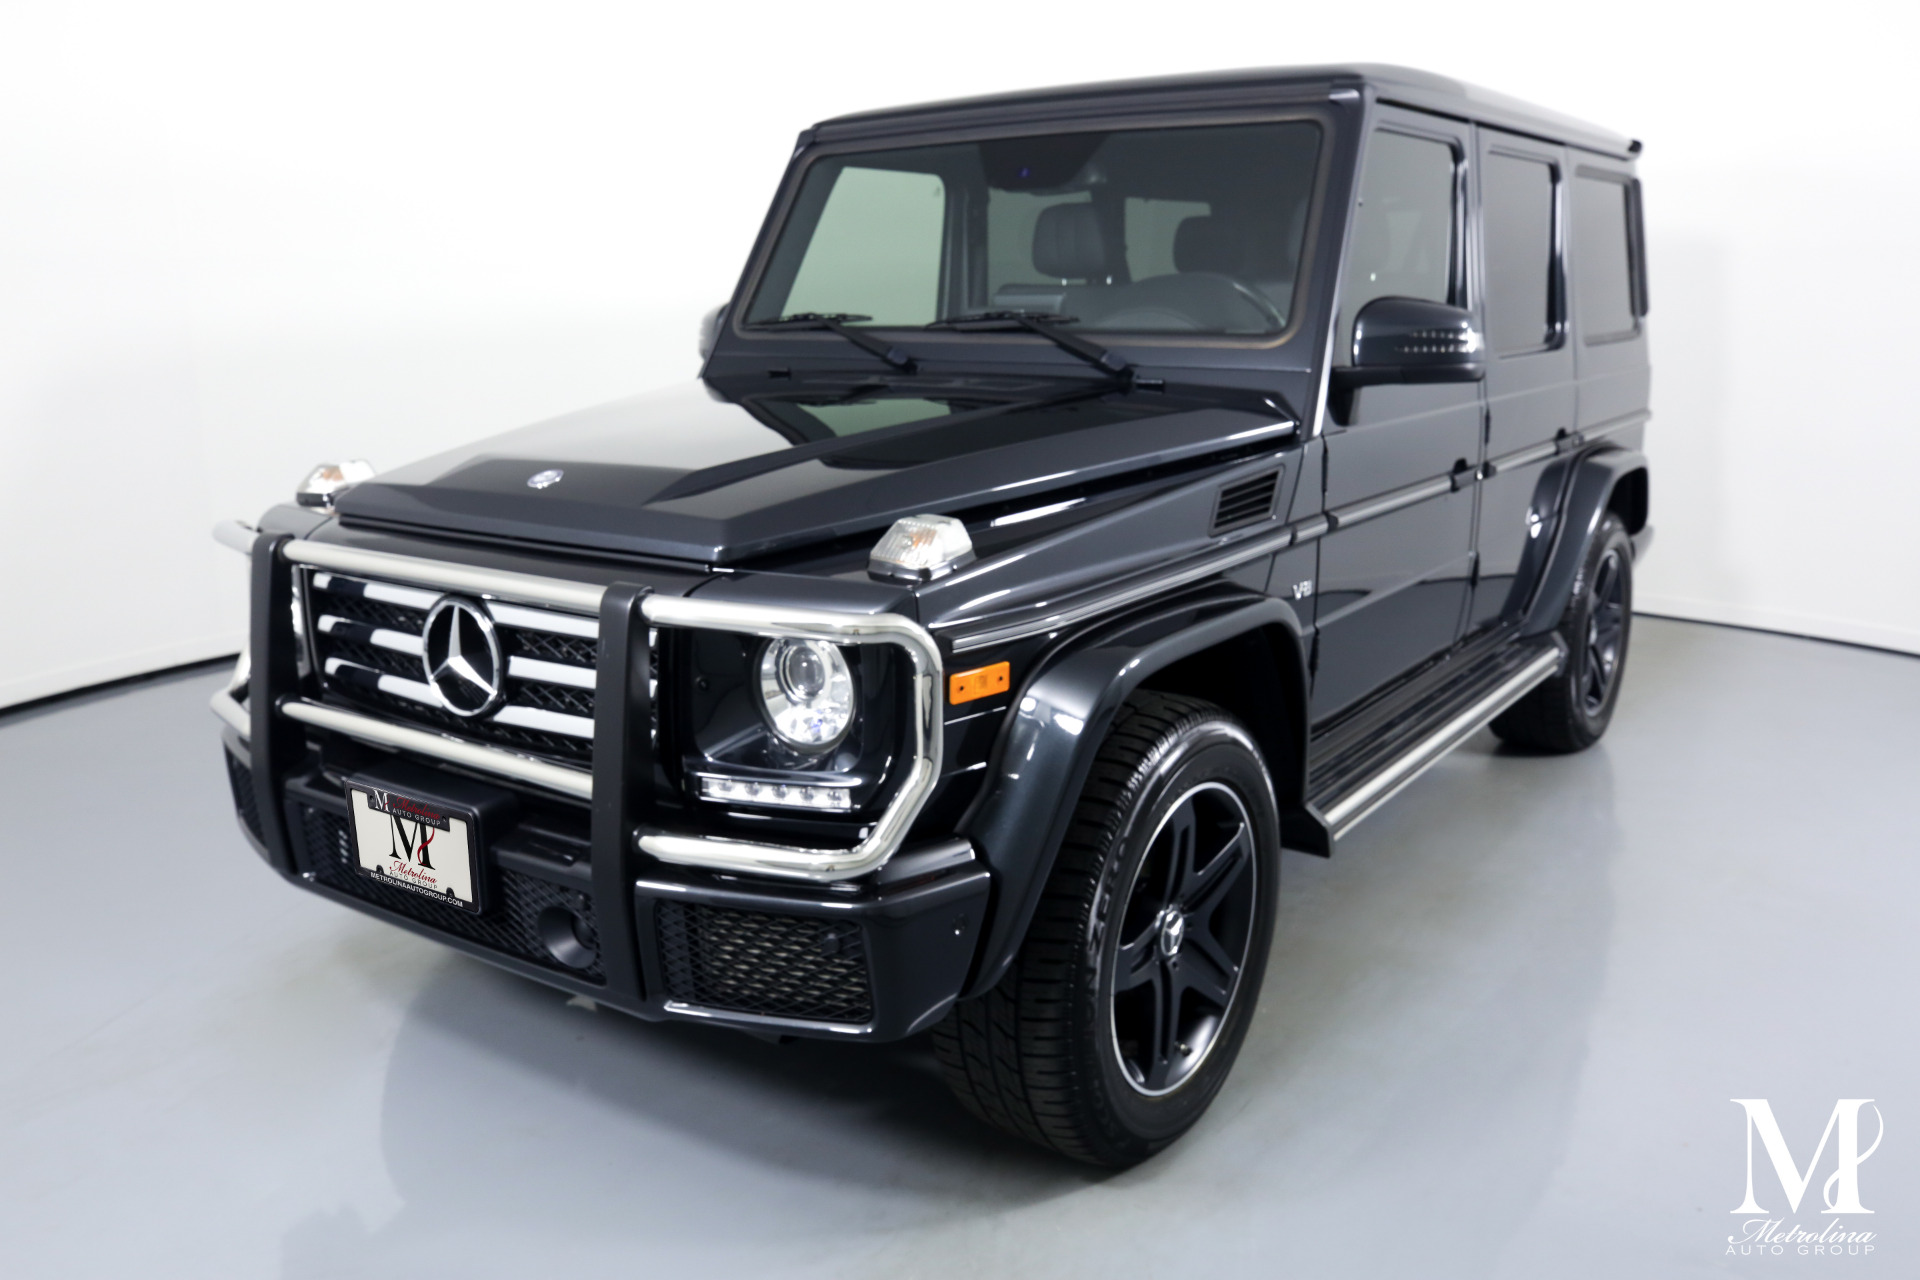 Used 2017 Mercedes-Benz G-Class G 550 for sale $78,456 at Metrolina Auto Group in Charlotte NC 28217 - 4